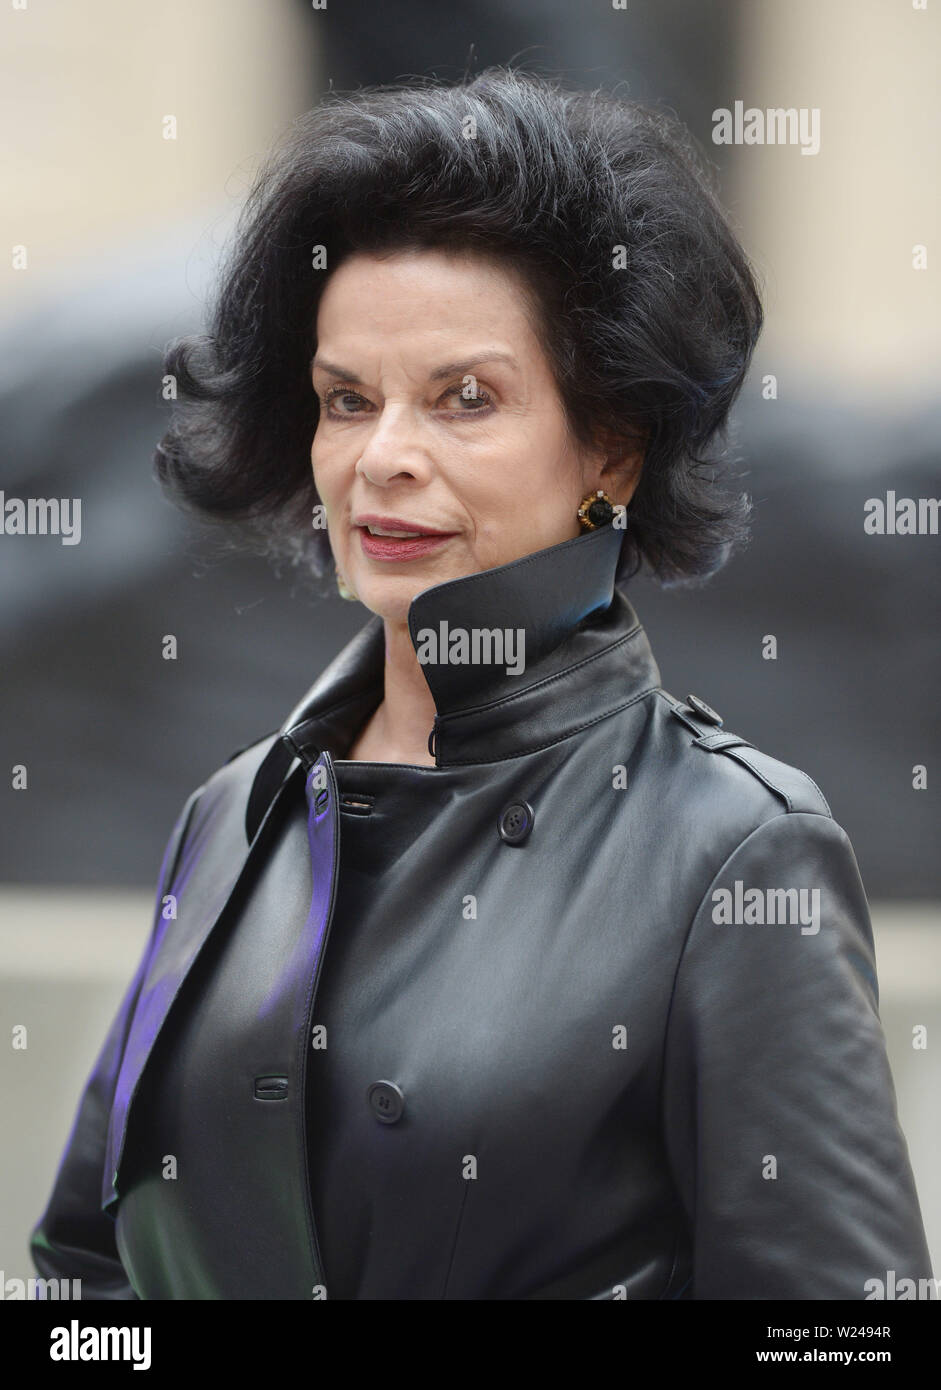 The Royal Academy Of Arts Summer Exhibition Preview Party at the Royal Academy Featuring: Bianca Jagger Where: London, United Kingdom When: 04 Jun 2019 Credit: WENN.com - Stock Image